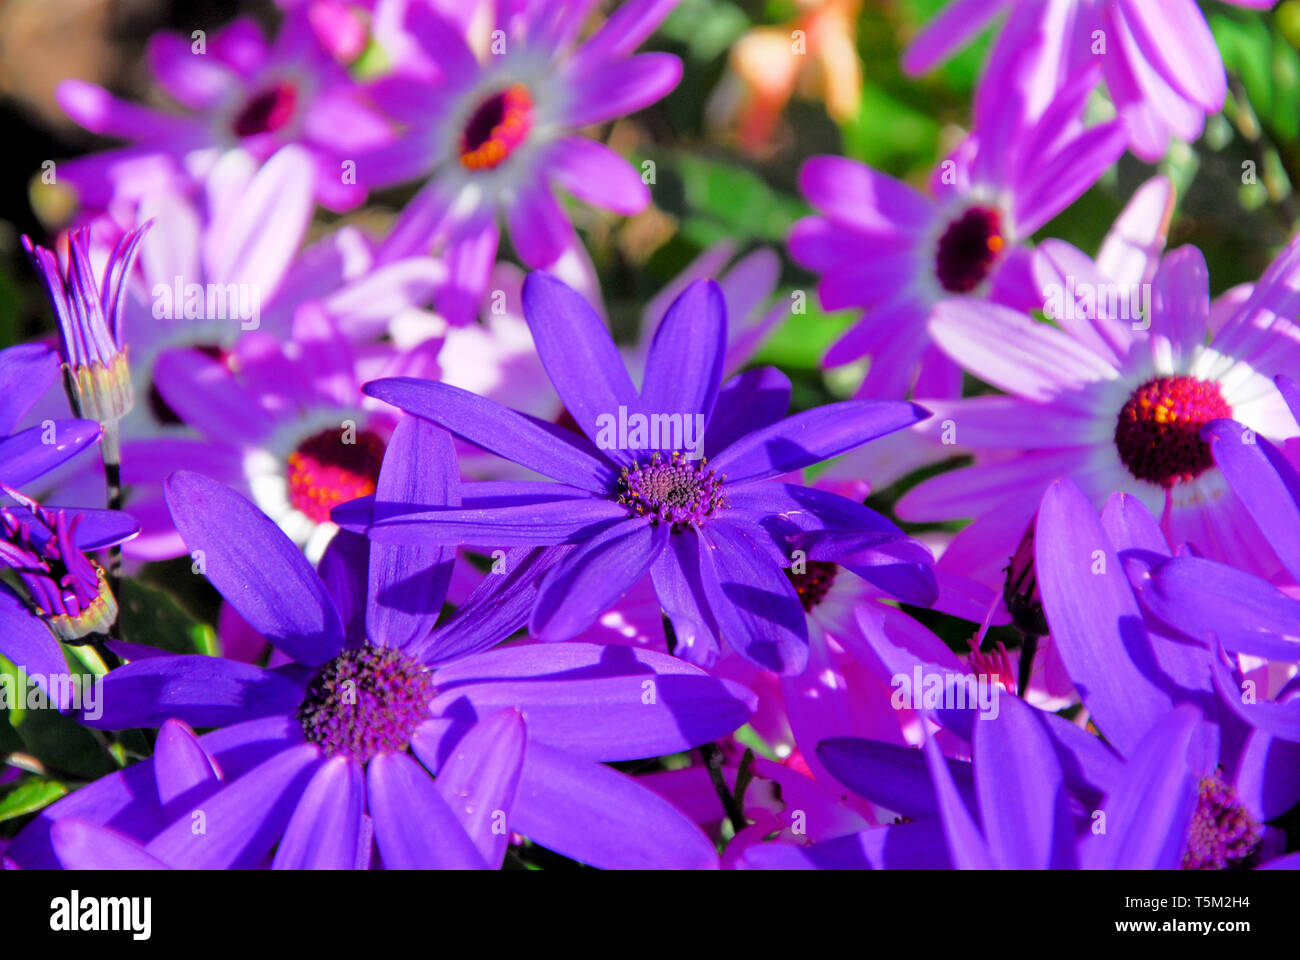 Portland, Dorset. 25th April 2019. 'Senetti' flowers in the sunshine in Portland, ahead of expected storm 'Hannah' on Friday. Credit: stuart fretwell/Alamy Live News - Stock Image